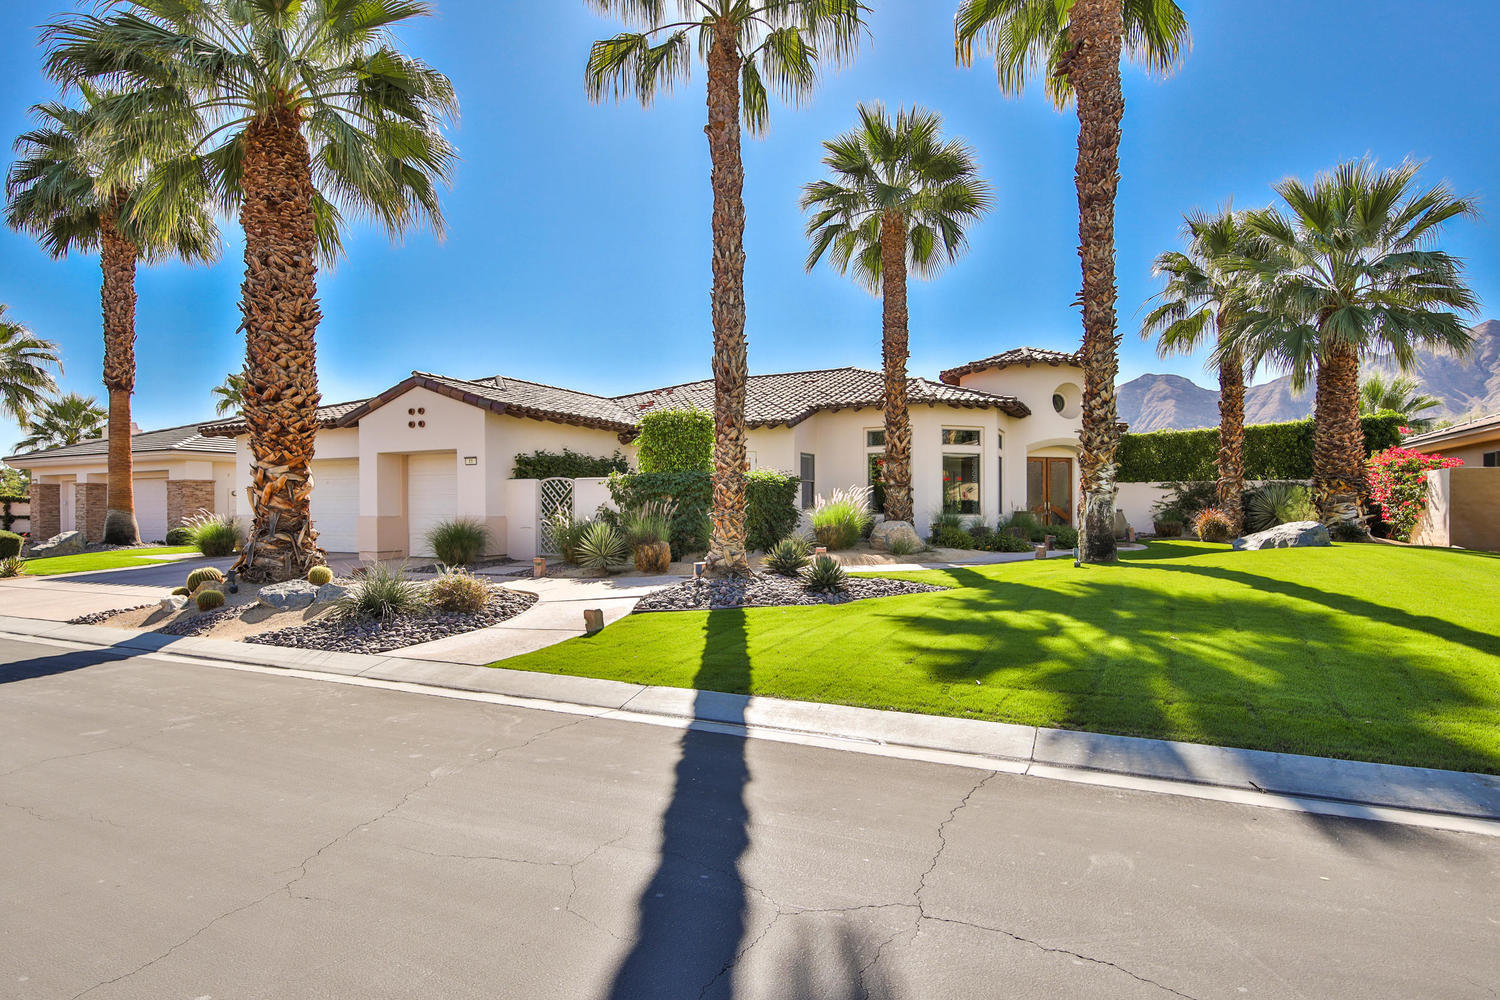 11 Ridgeline Way Rancho Mirage, CA 92270